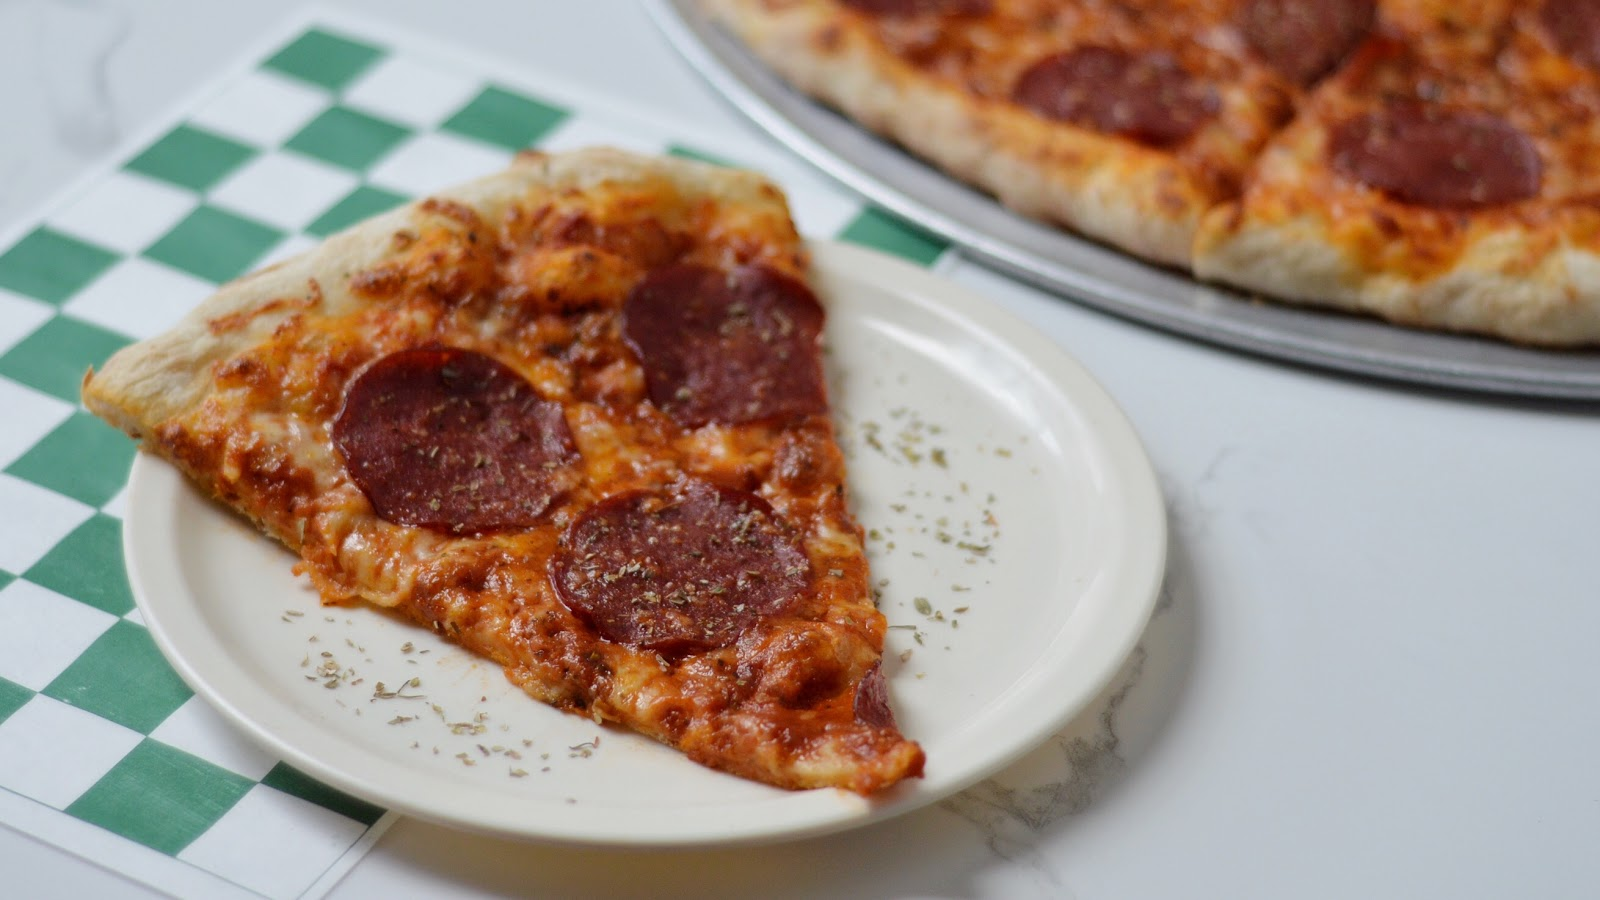 When's the best time to grab a New York Slice pizza?